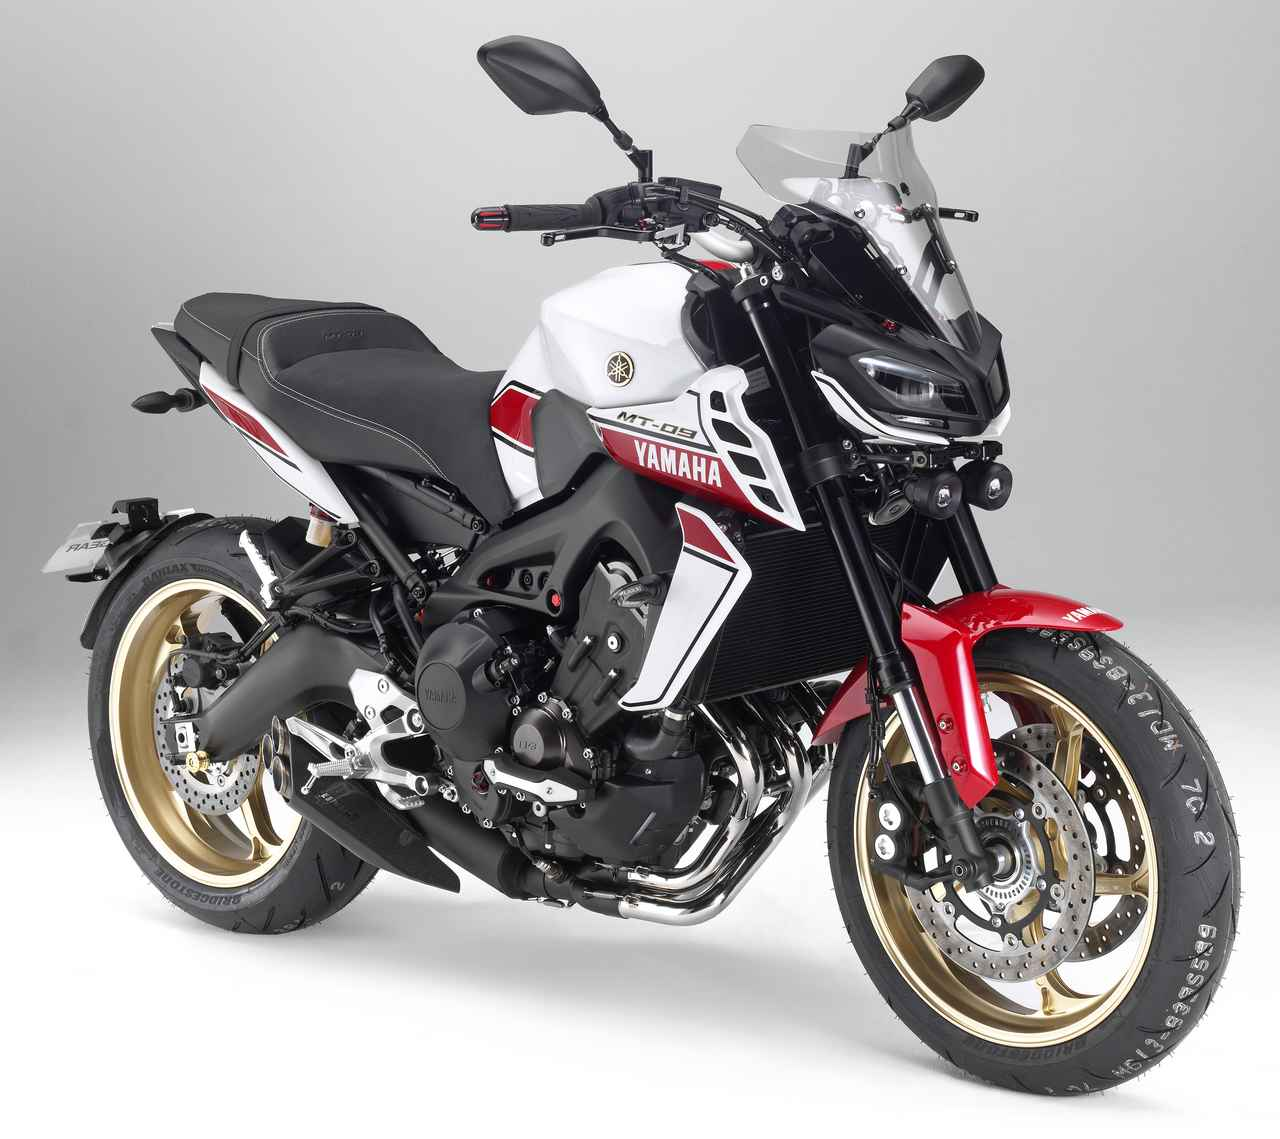 yamaha launches kit mt09 and scr950 cus visordown